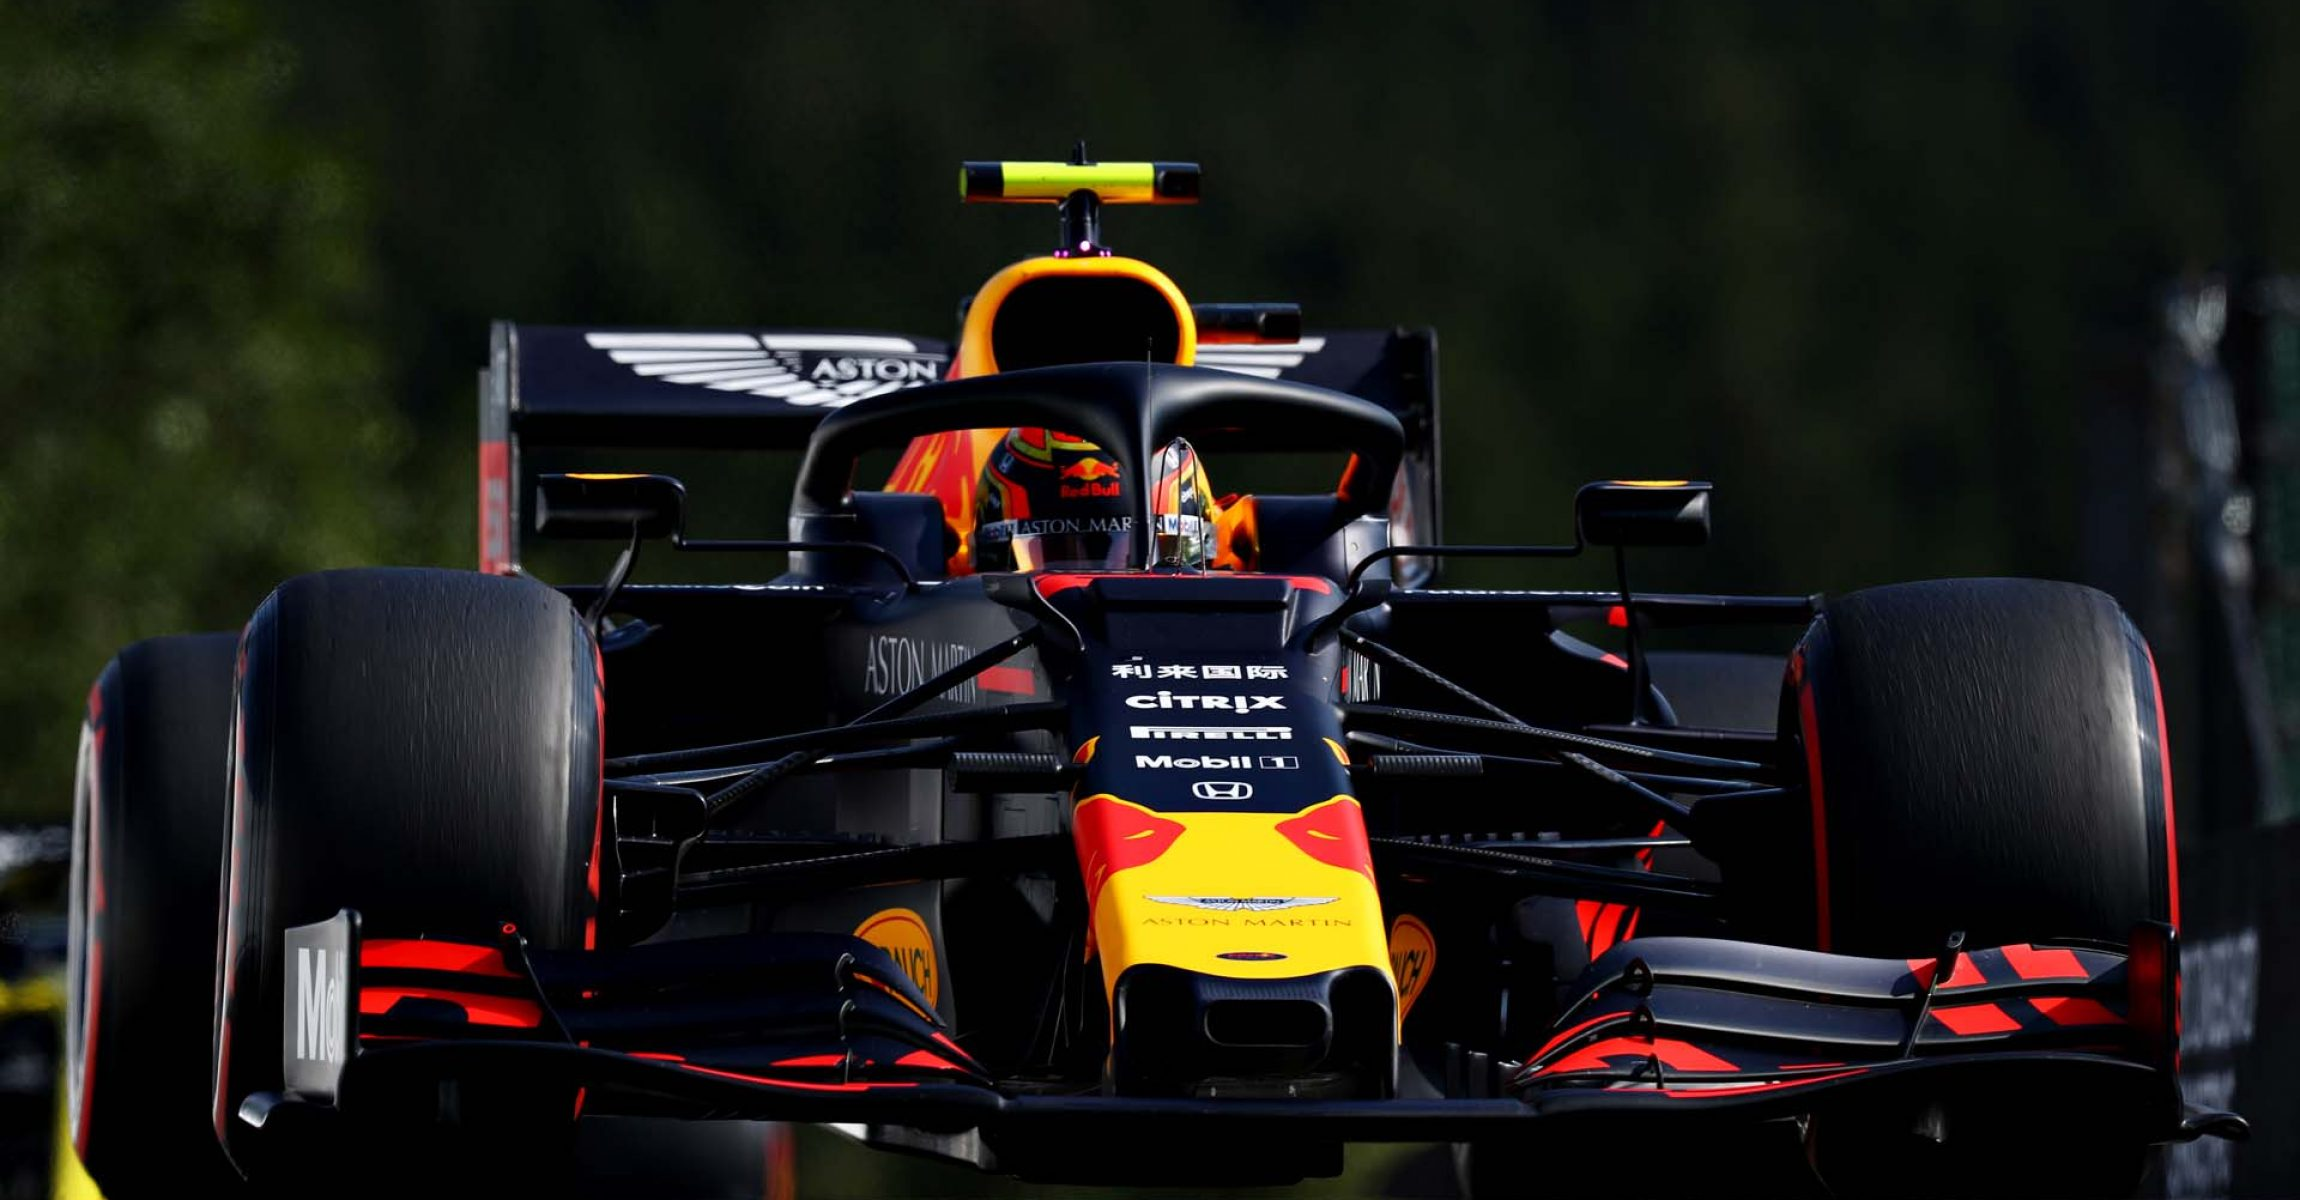 SPA, BELGIUM - AUGUST 31: Alexander Albon of Thailand driving the (23) Aston Martin Red Bull Racing RB15 on track during qualifying for the F1 Grand Prix of Belgium at Circuit de Spa-Francorchamps on August 31, 2019 in Spa, Belgium. (Photo by Mark Thompson/Getty Images) // Getty Images / Red Bull Content Pool  // AP-21E8SH9EW2111 // Usage for editorial use only //